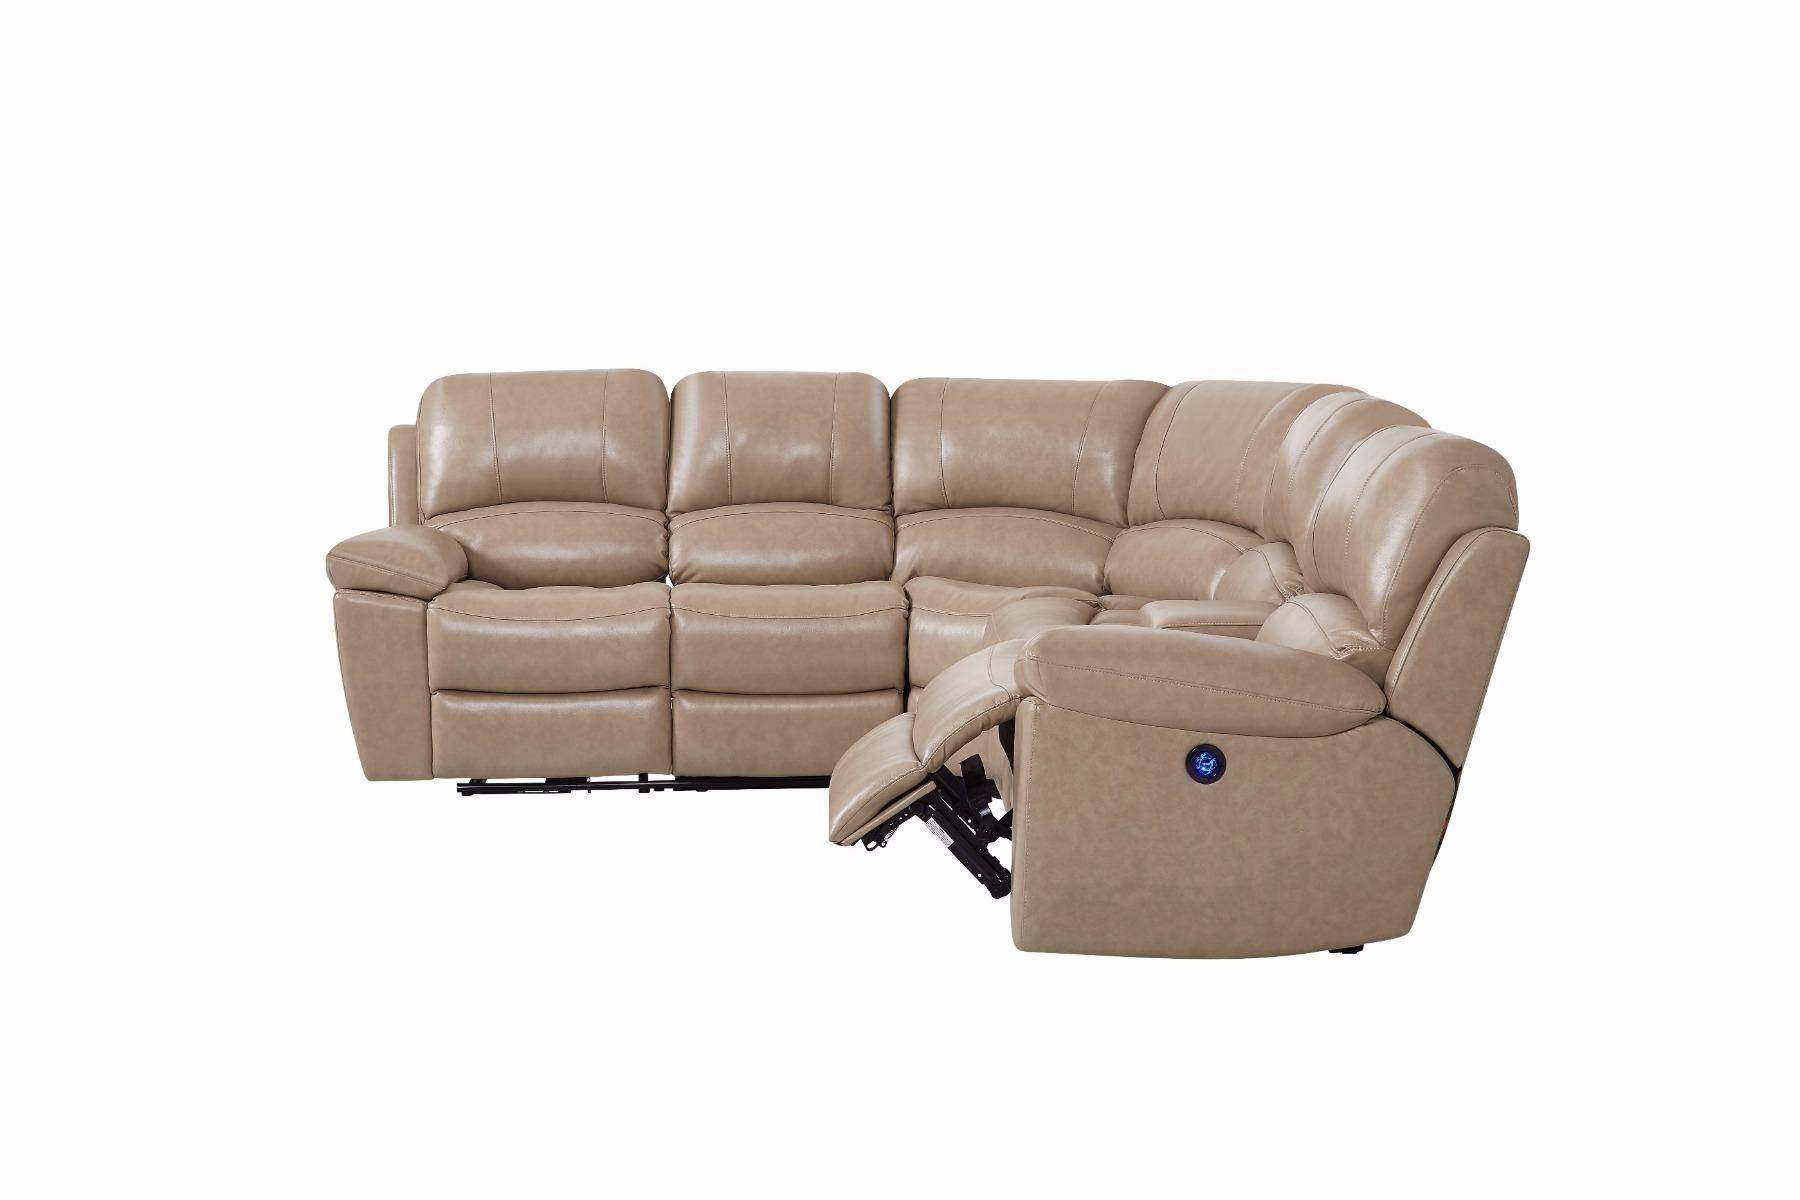 global furniture u15026 glove tan leather reclining sectional sofa rh nyfurnitureoutlets com